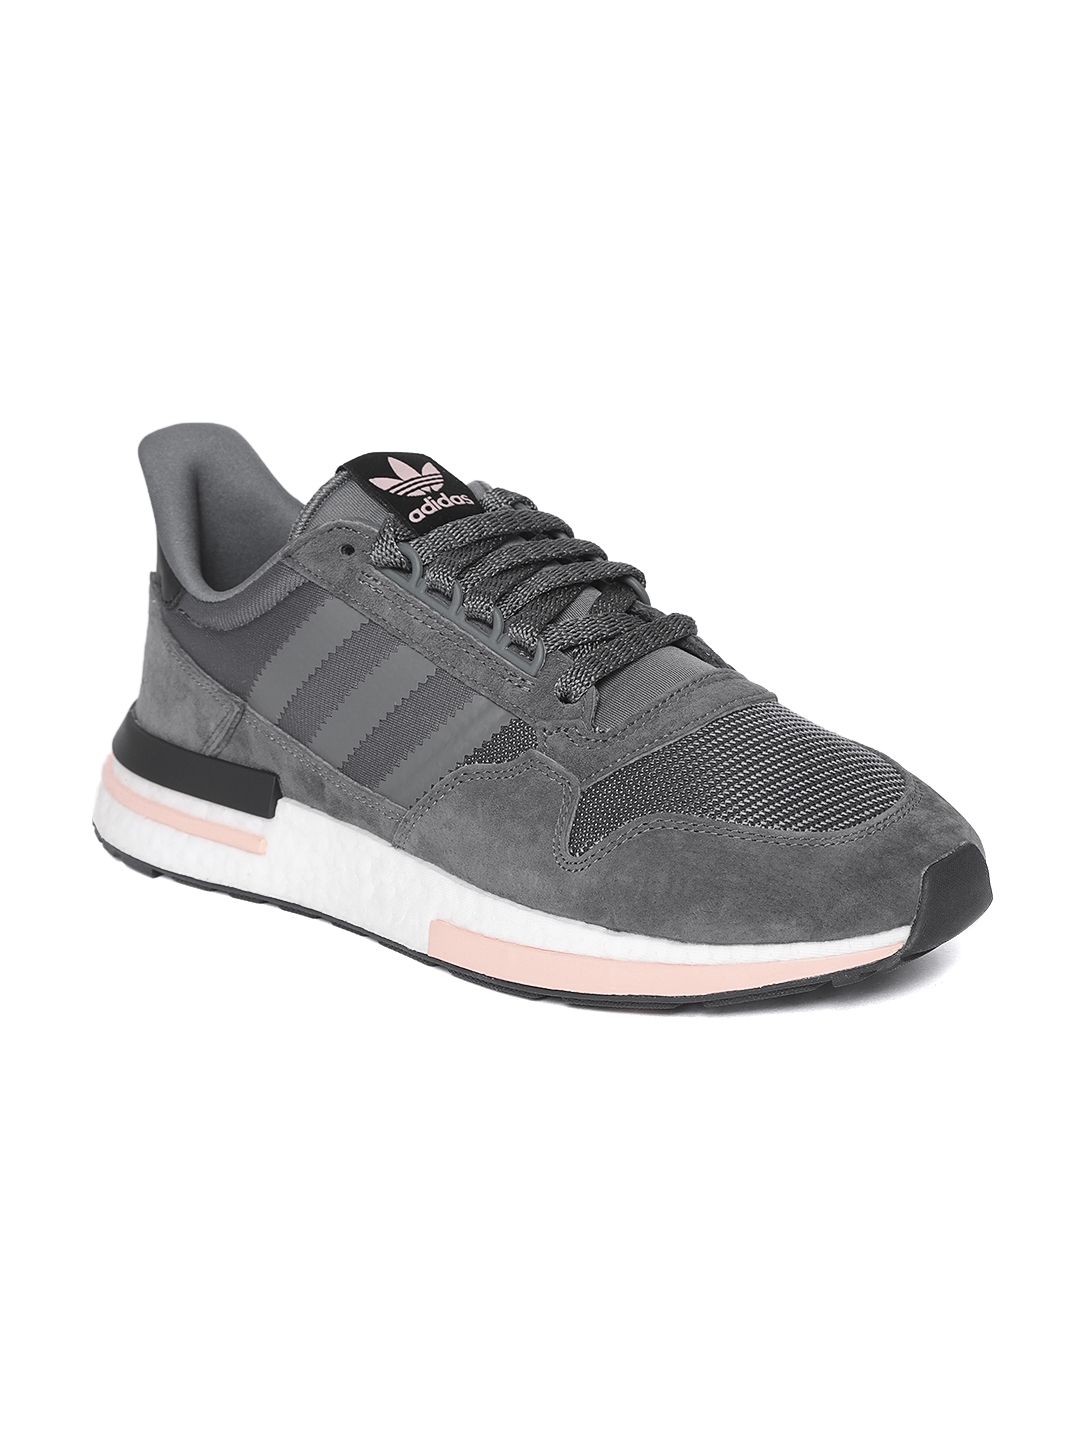 quality design 772d6 ee7a4 ADIDAS Originals Men Charcoal Grey ZX 500 RM Sneakers